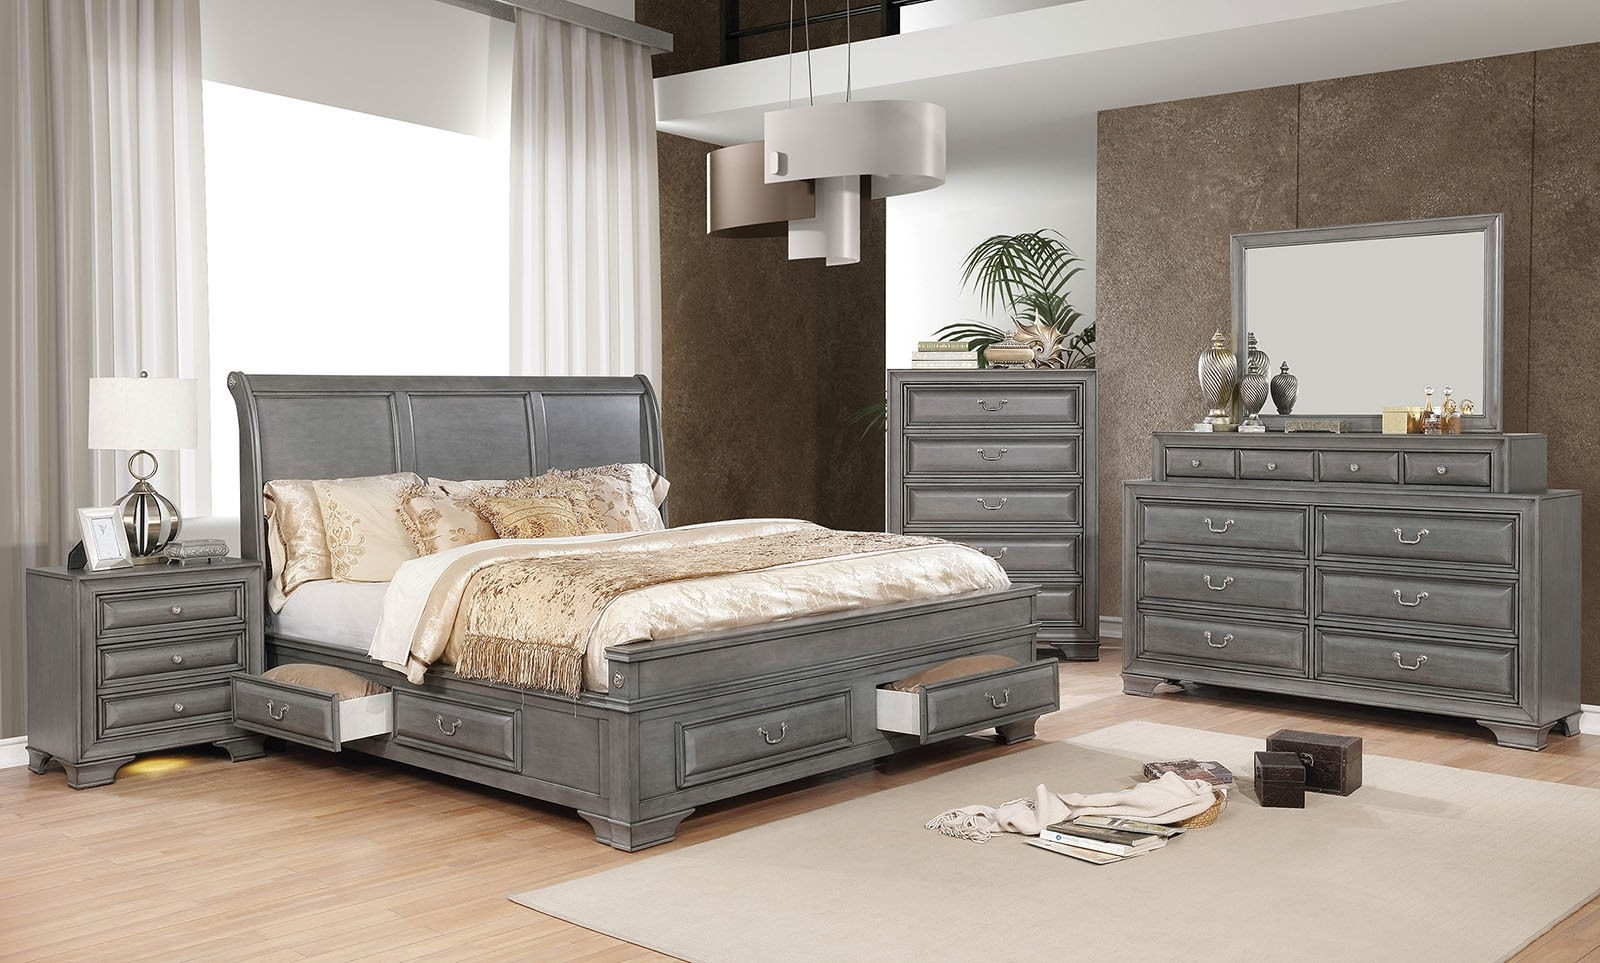 Brandt Bedroom Set In Gray With Storage Bed By Furniture Of America